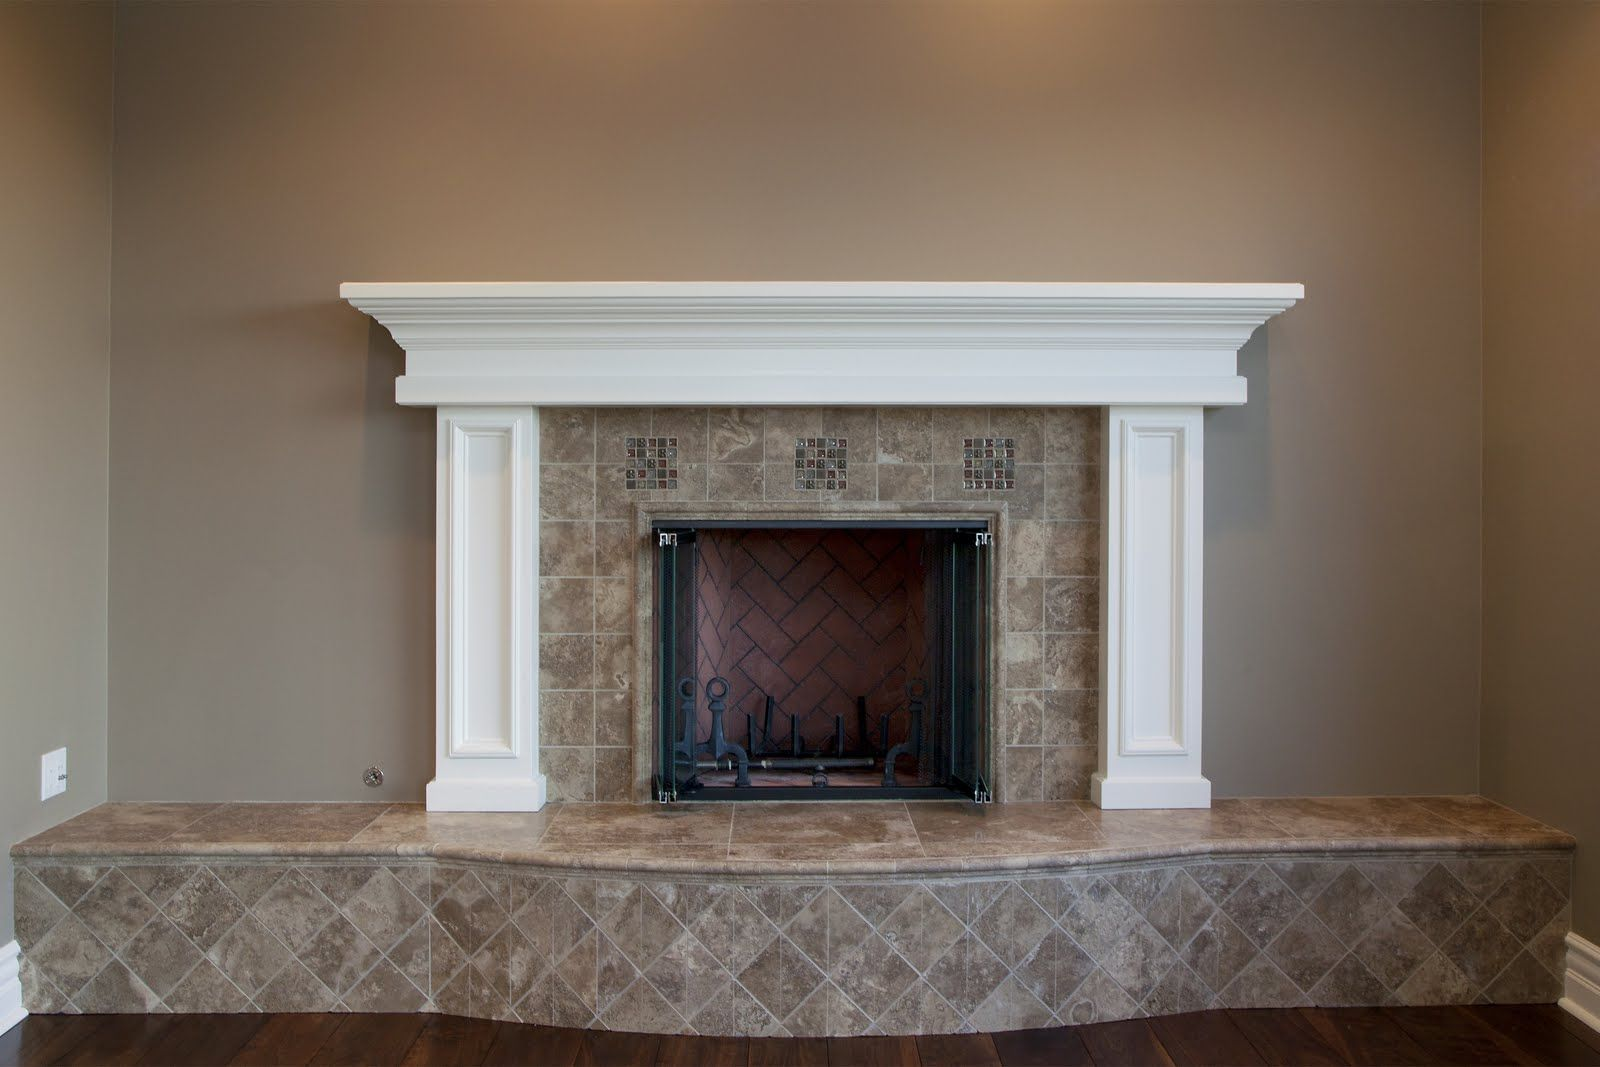 Tile fireplace and hearth designs the fireplace box with terra pretty large collection of modern age fireplace surround for living room with nice white mantel and cool tile ceramic idea dailygadgetfo Gallery